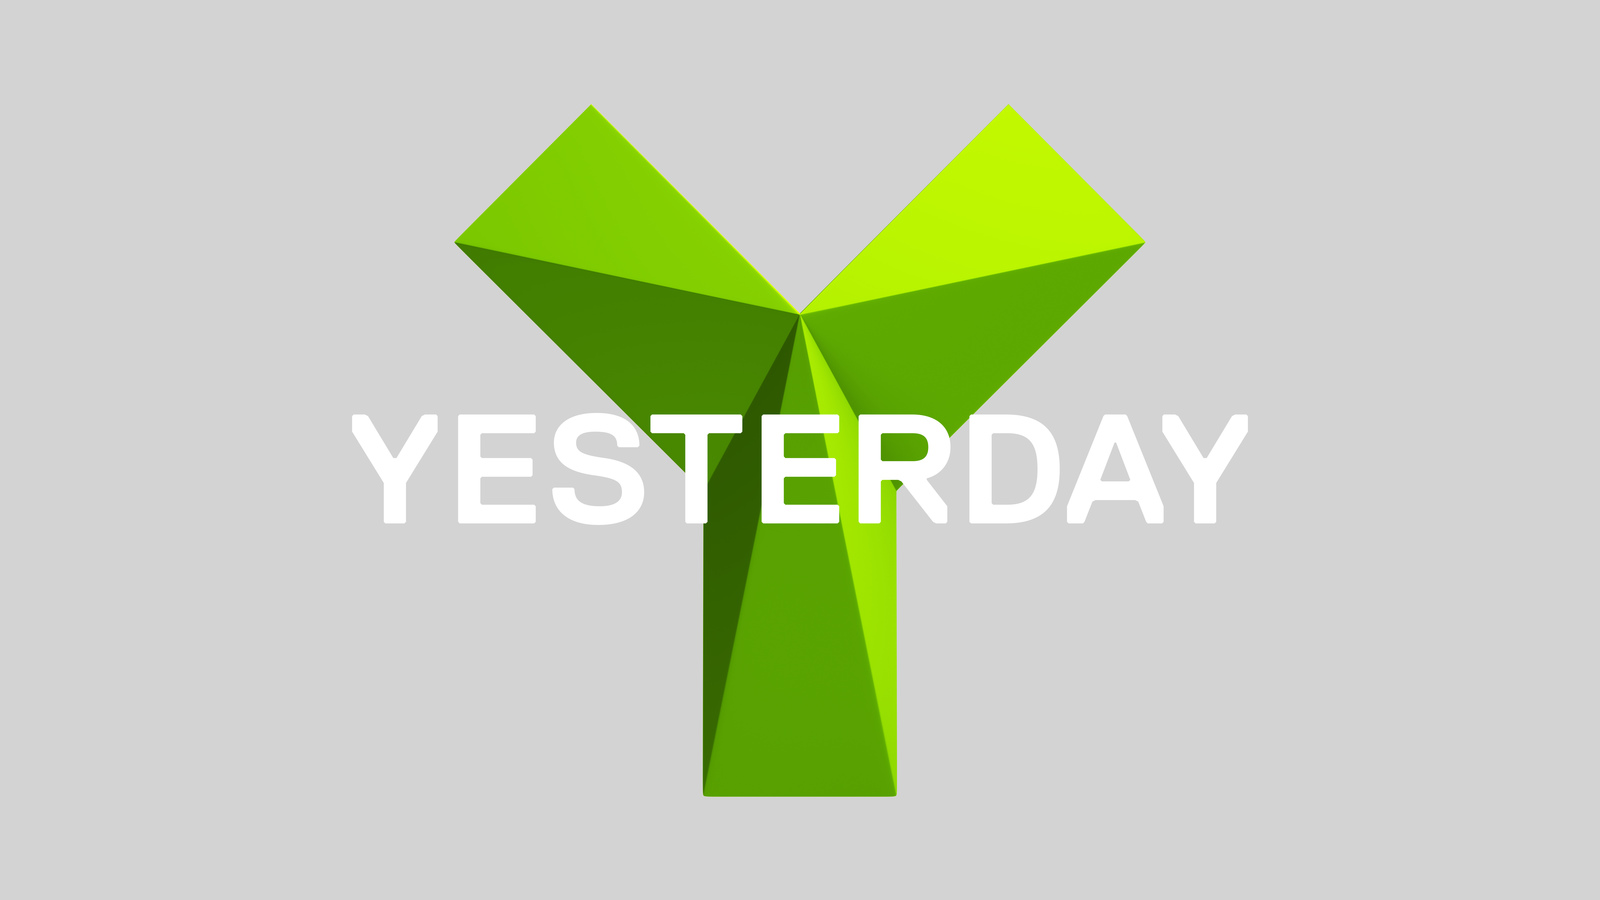 Home | Yesterday Channel